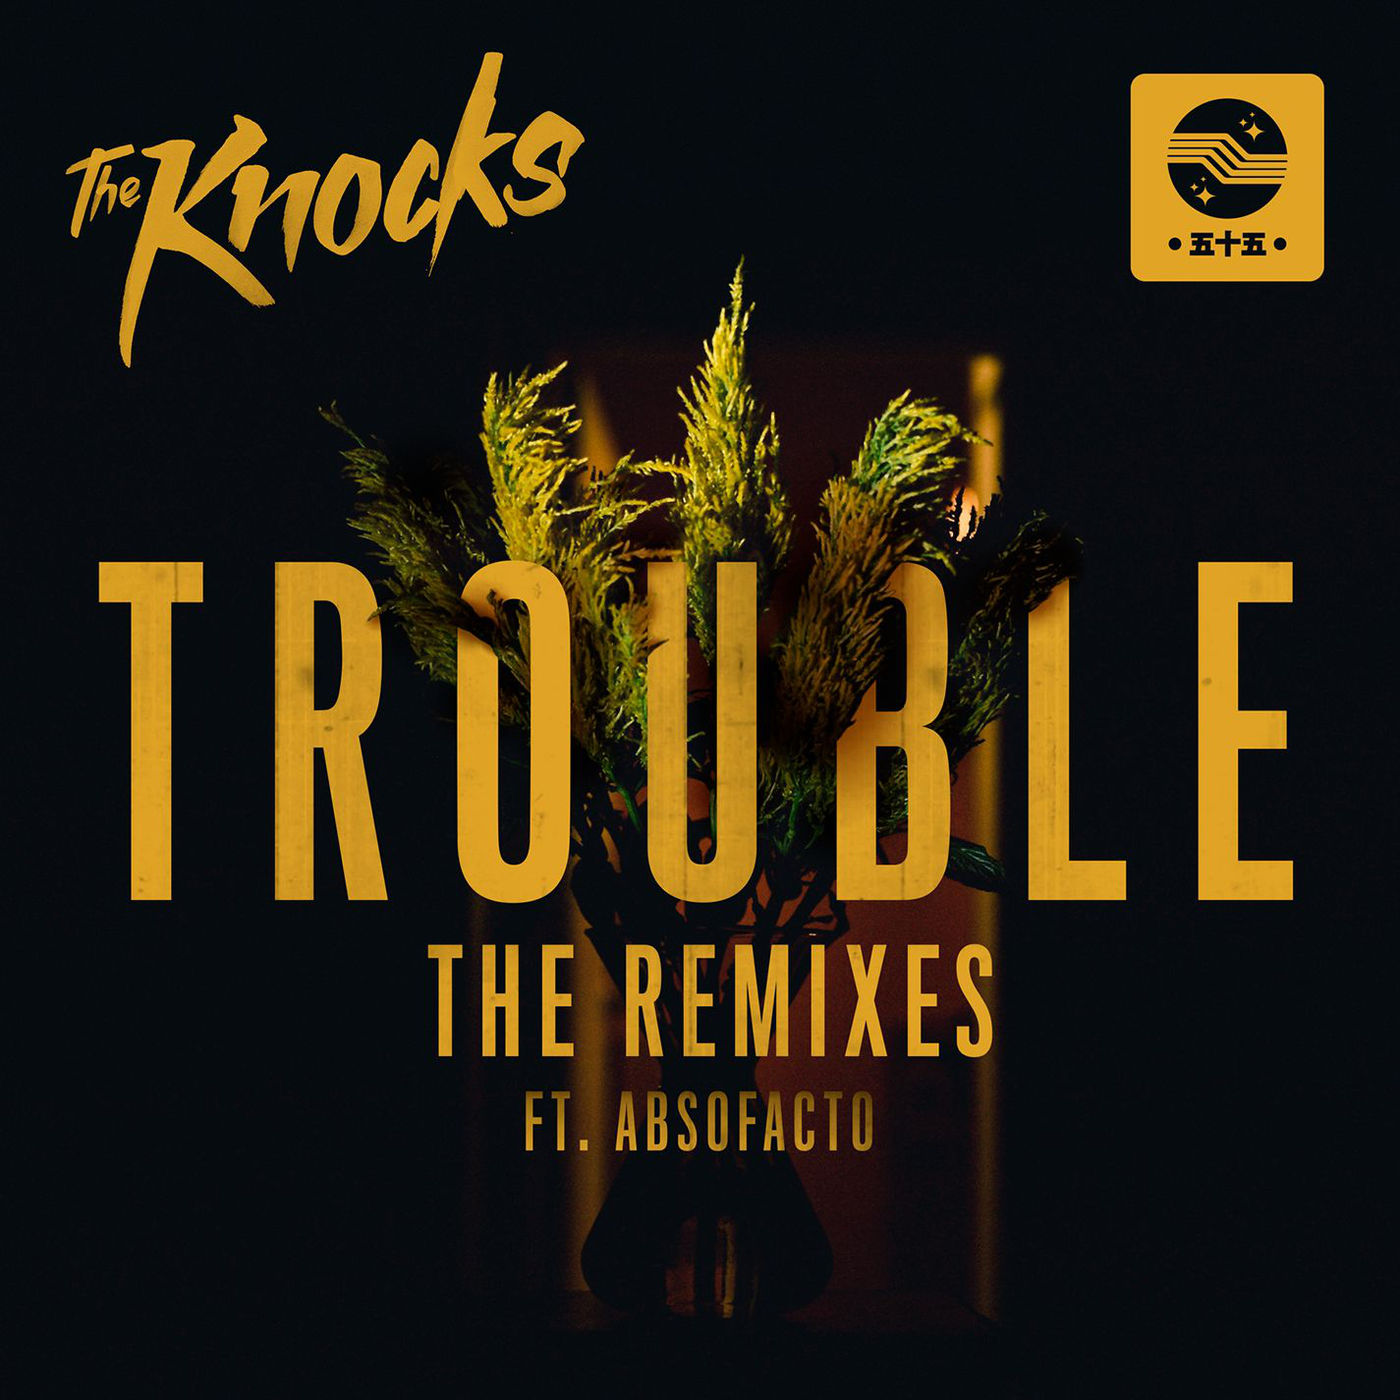 The Knocks - TROUBLE (feat. Absofacto) [Remixes] - Single Cover